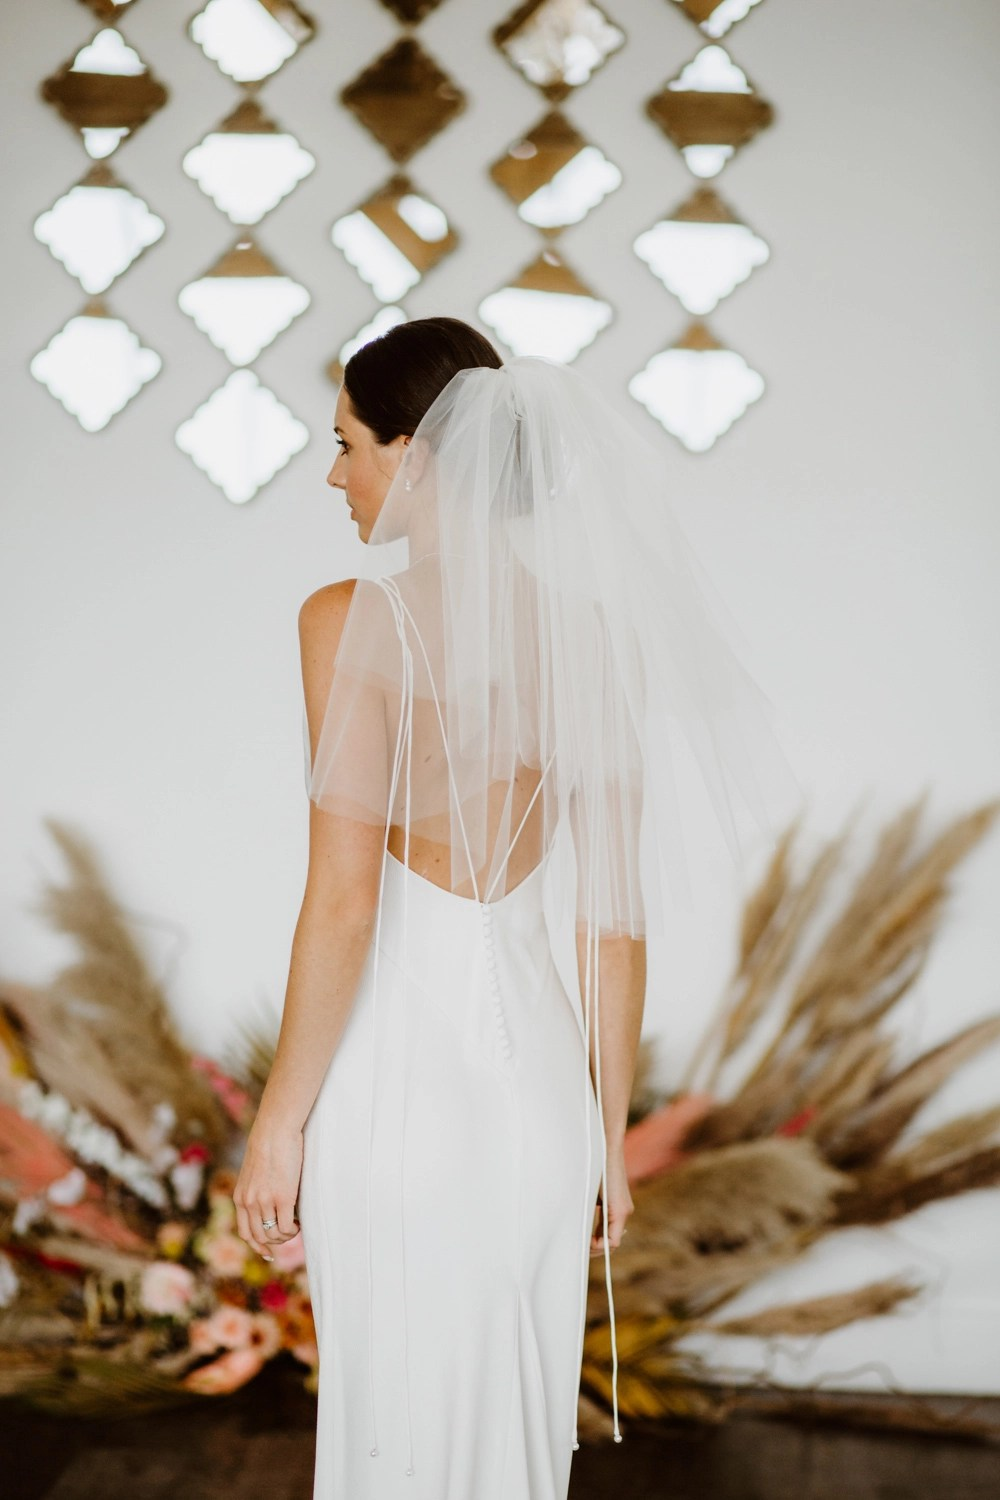 Priscilla 1960 S Inspired Short Bouffant Wedding Veil With A Cut Edge - Wedding Veil, 3 Meter White Ivory Cathedral Wedding Veils Long Lace Edge Bridal Veil With Comb Wedding Accessories Bride Veu Wedding Veil Bridal Veil With Comb Cathedral Wedding Veilwedding Veil Aliexpress